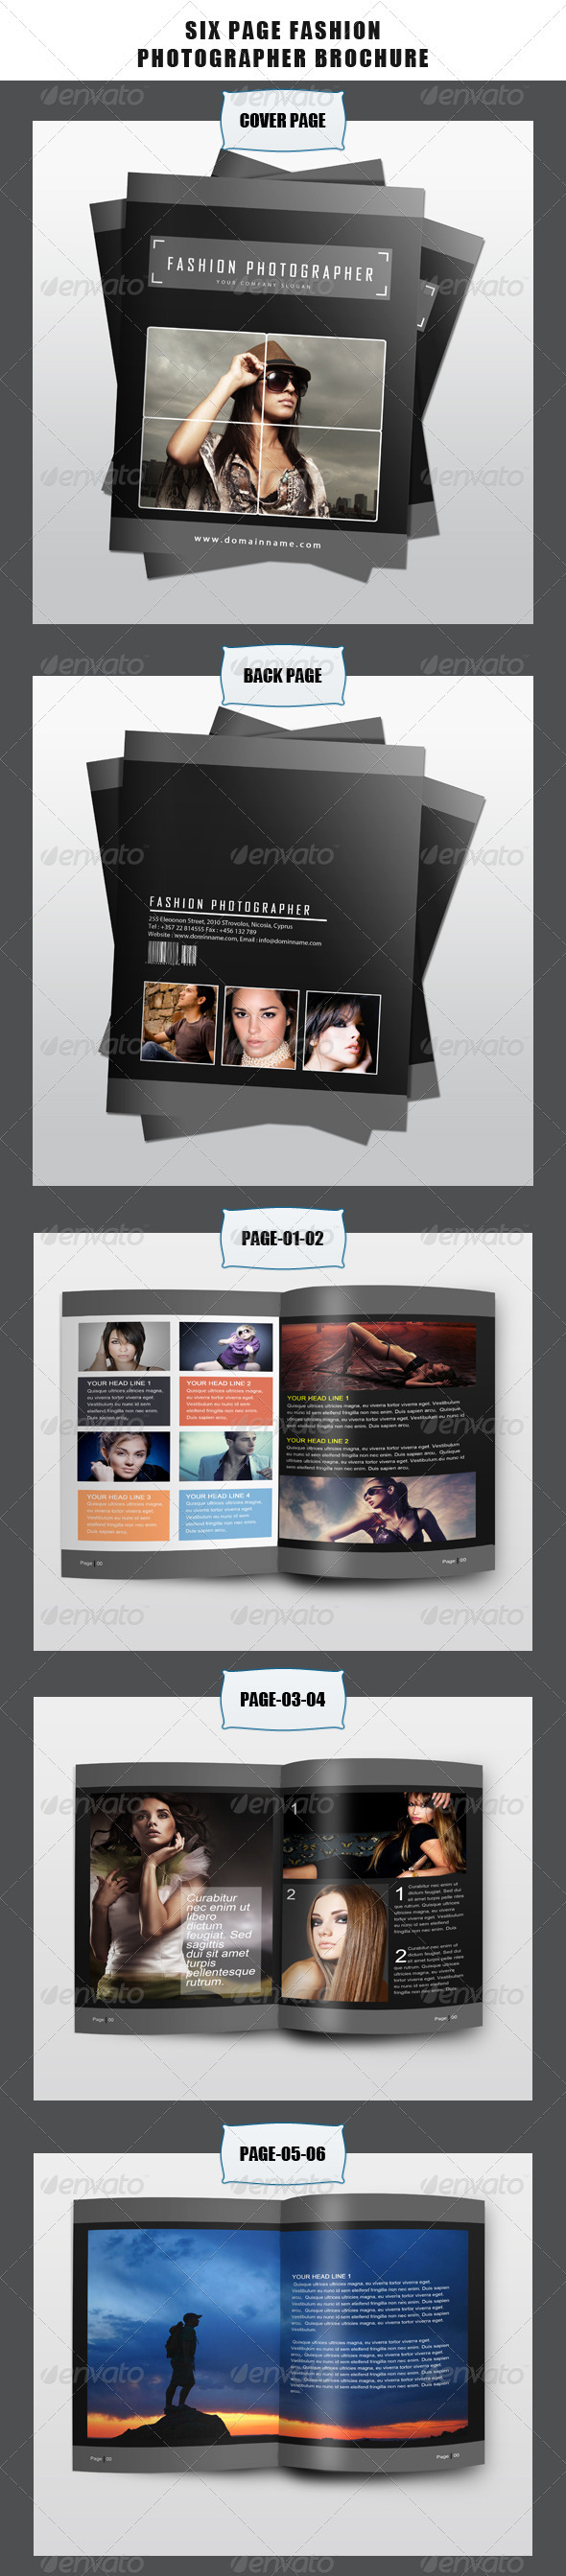 Six Page Fashion Photographer Brochure - Brochures Print Templates